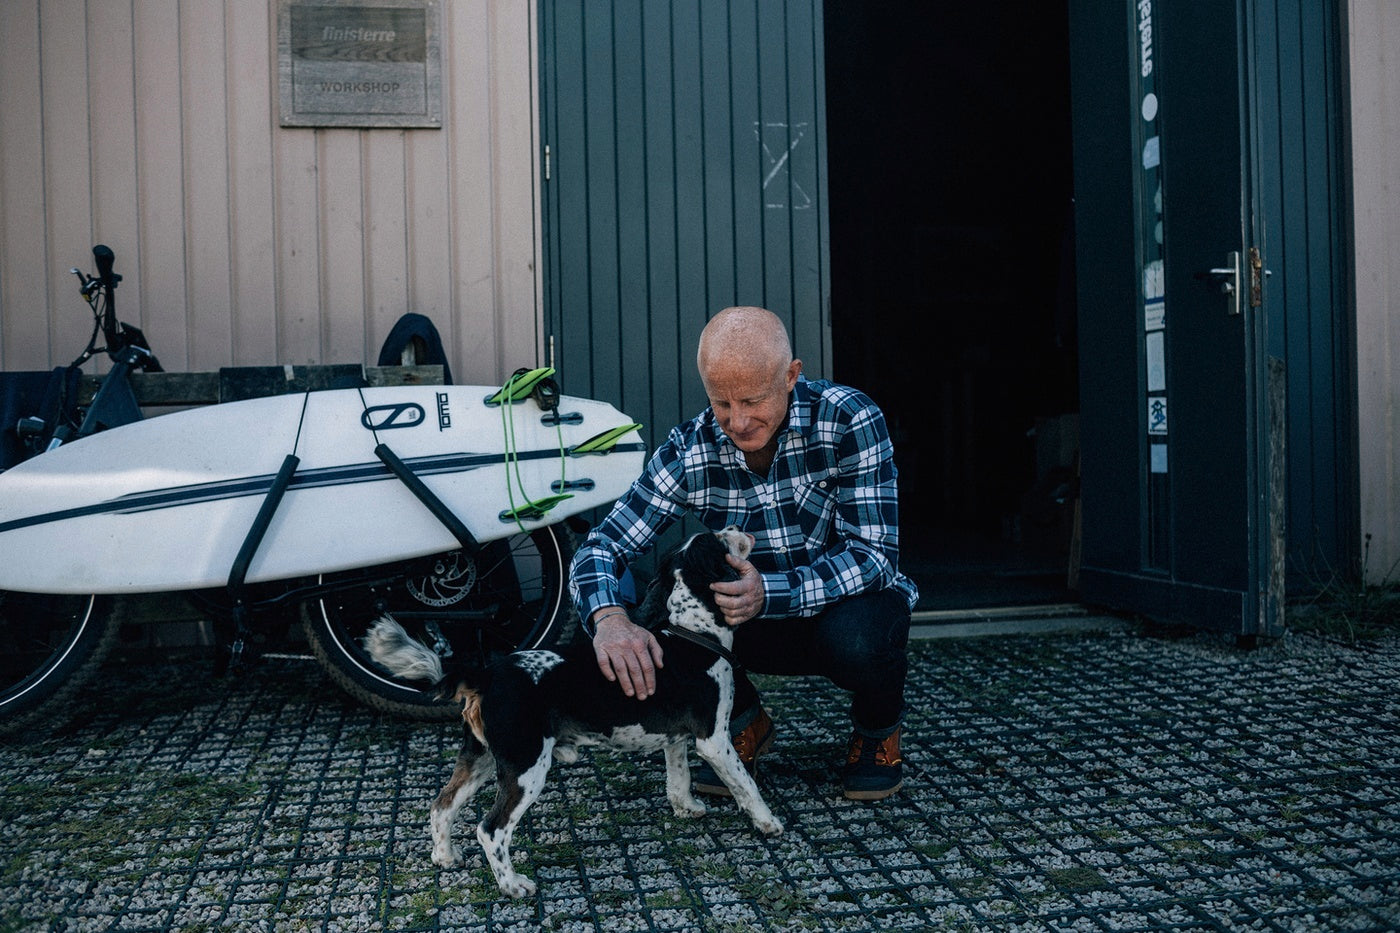 Tom is welcomed back to Finisterre HQ by his faithful hound Otis